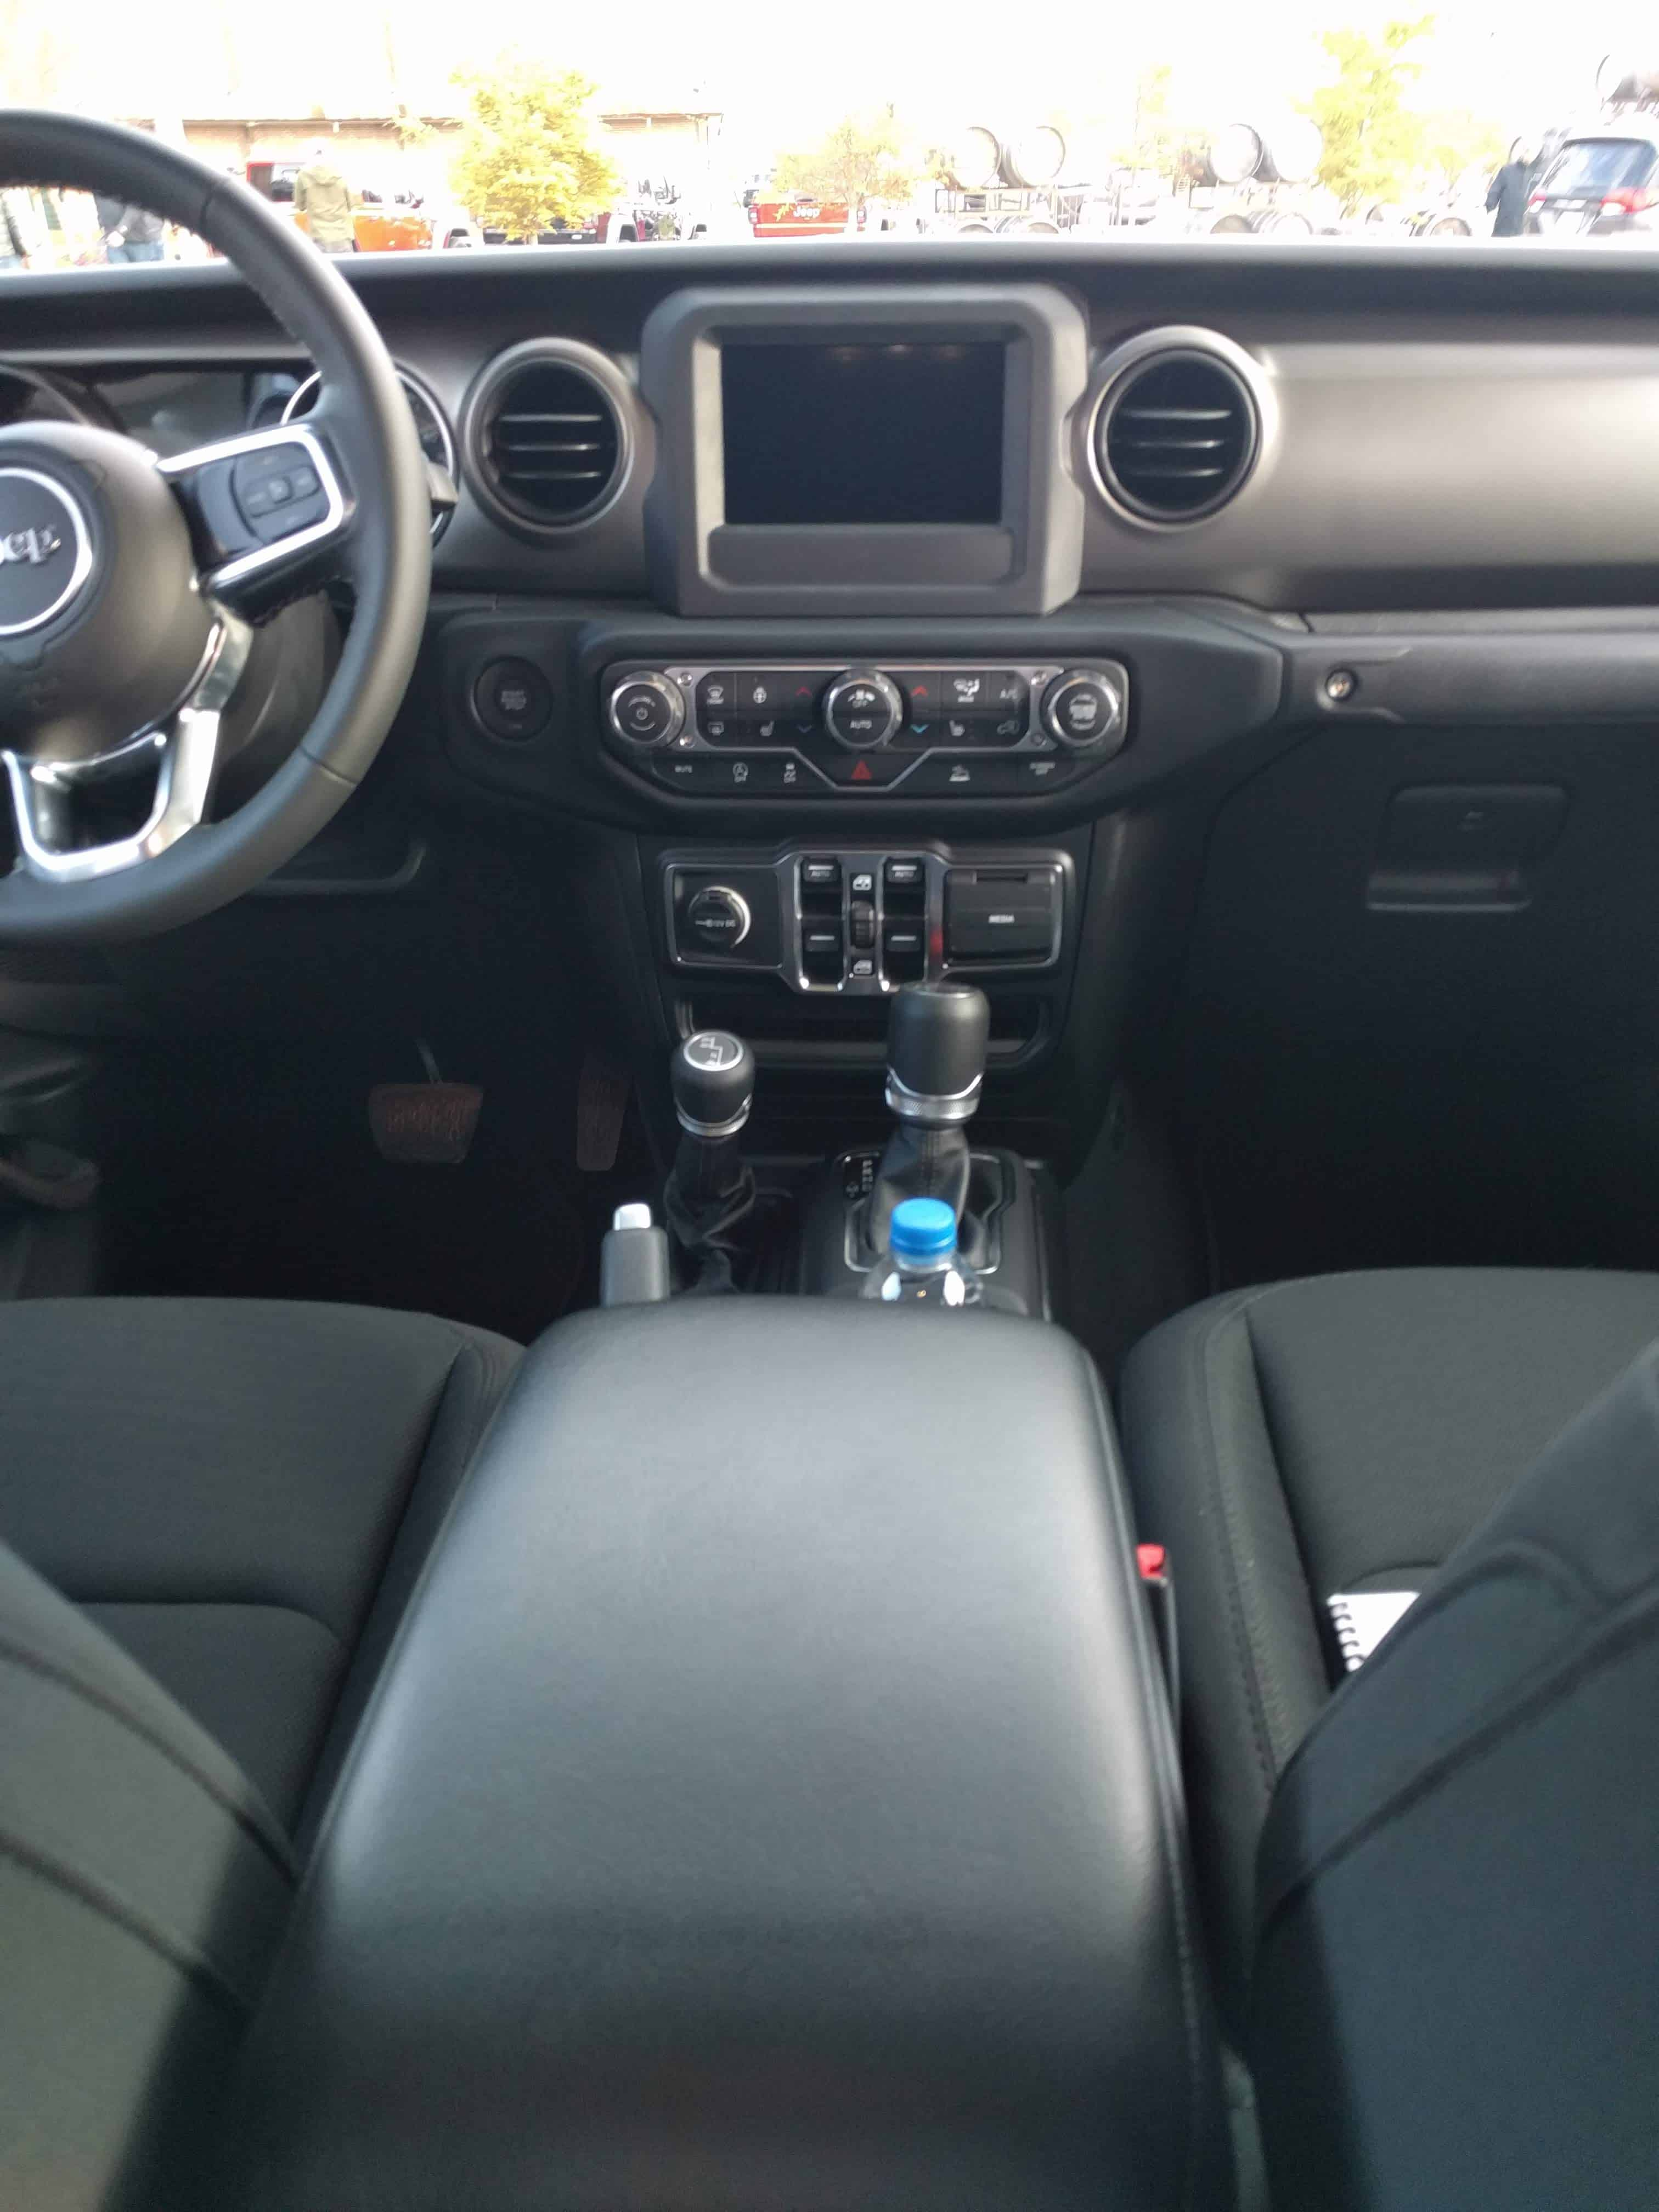 2020 jeep gladiator new truck interior front centre stack